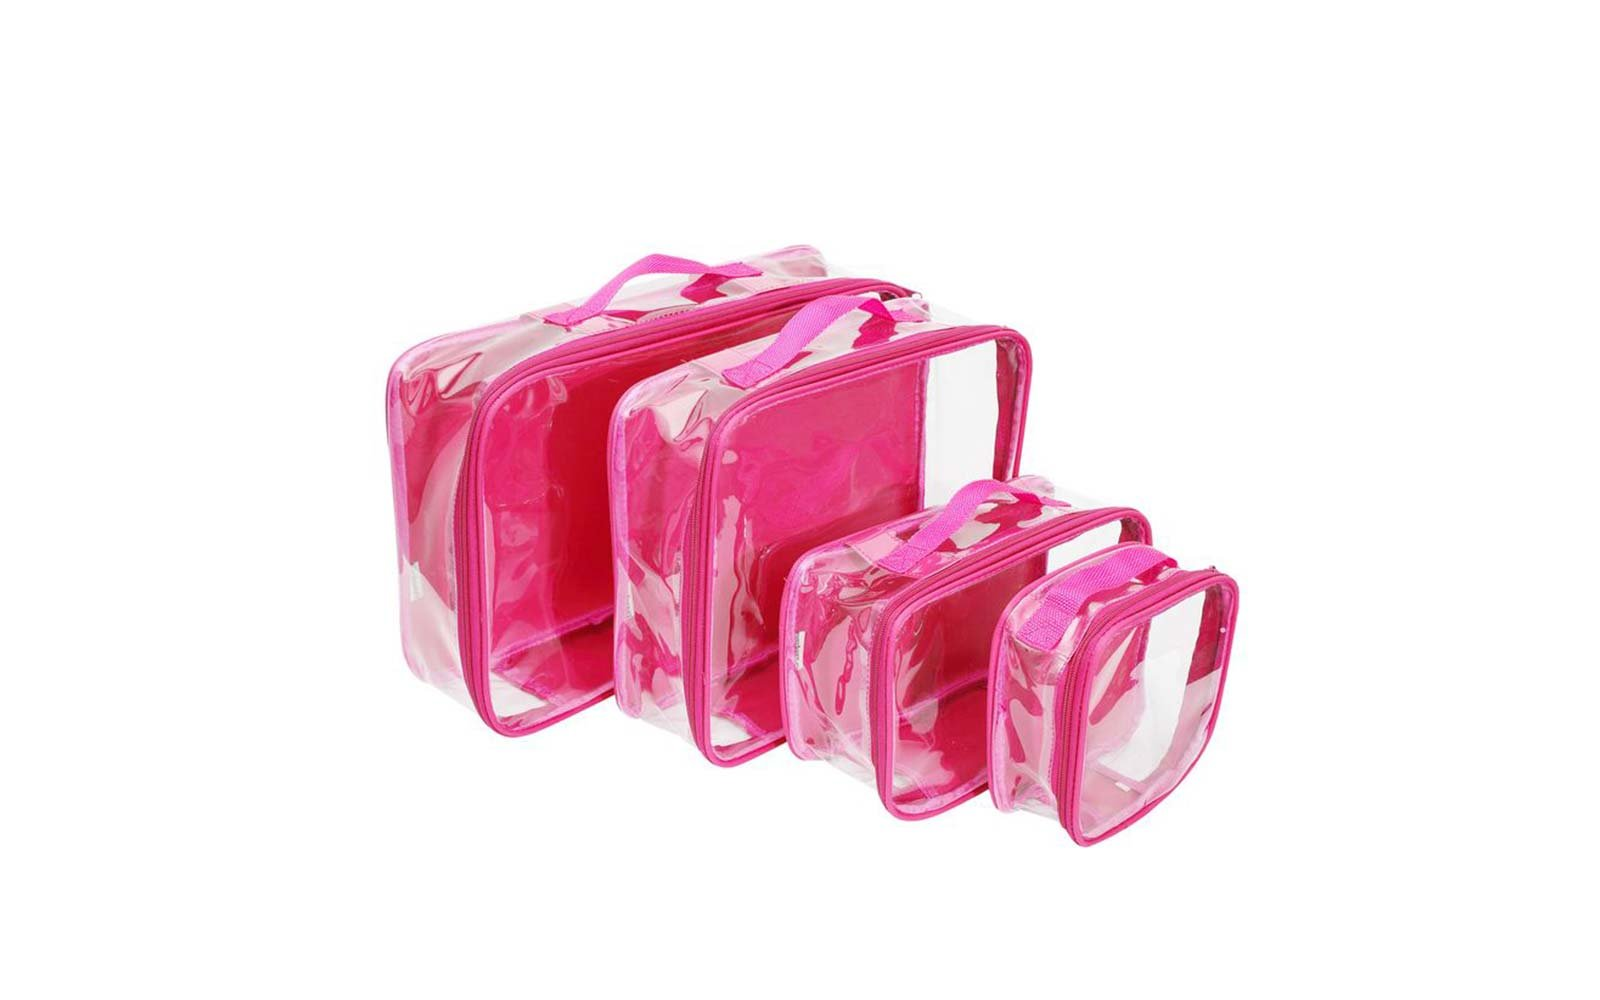 Travel Luggage Organiser The 8 Best Packing Cubes For Travel Travel Leisure